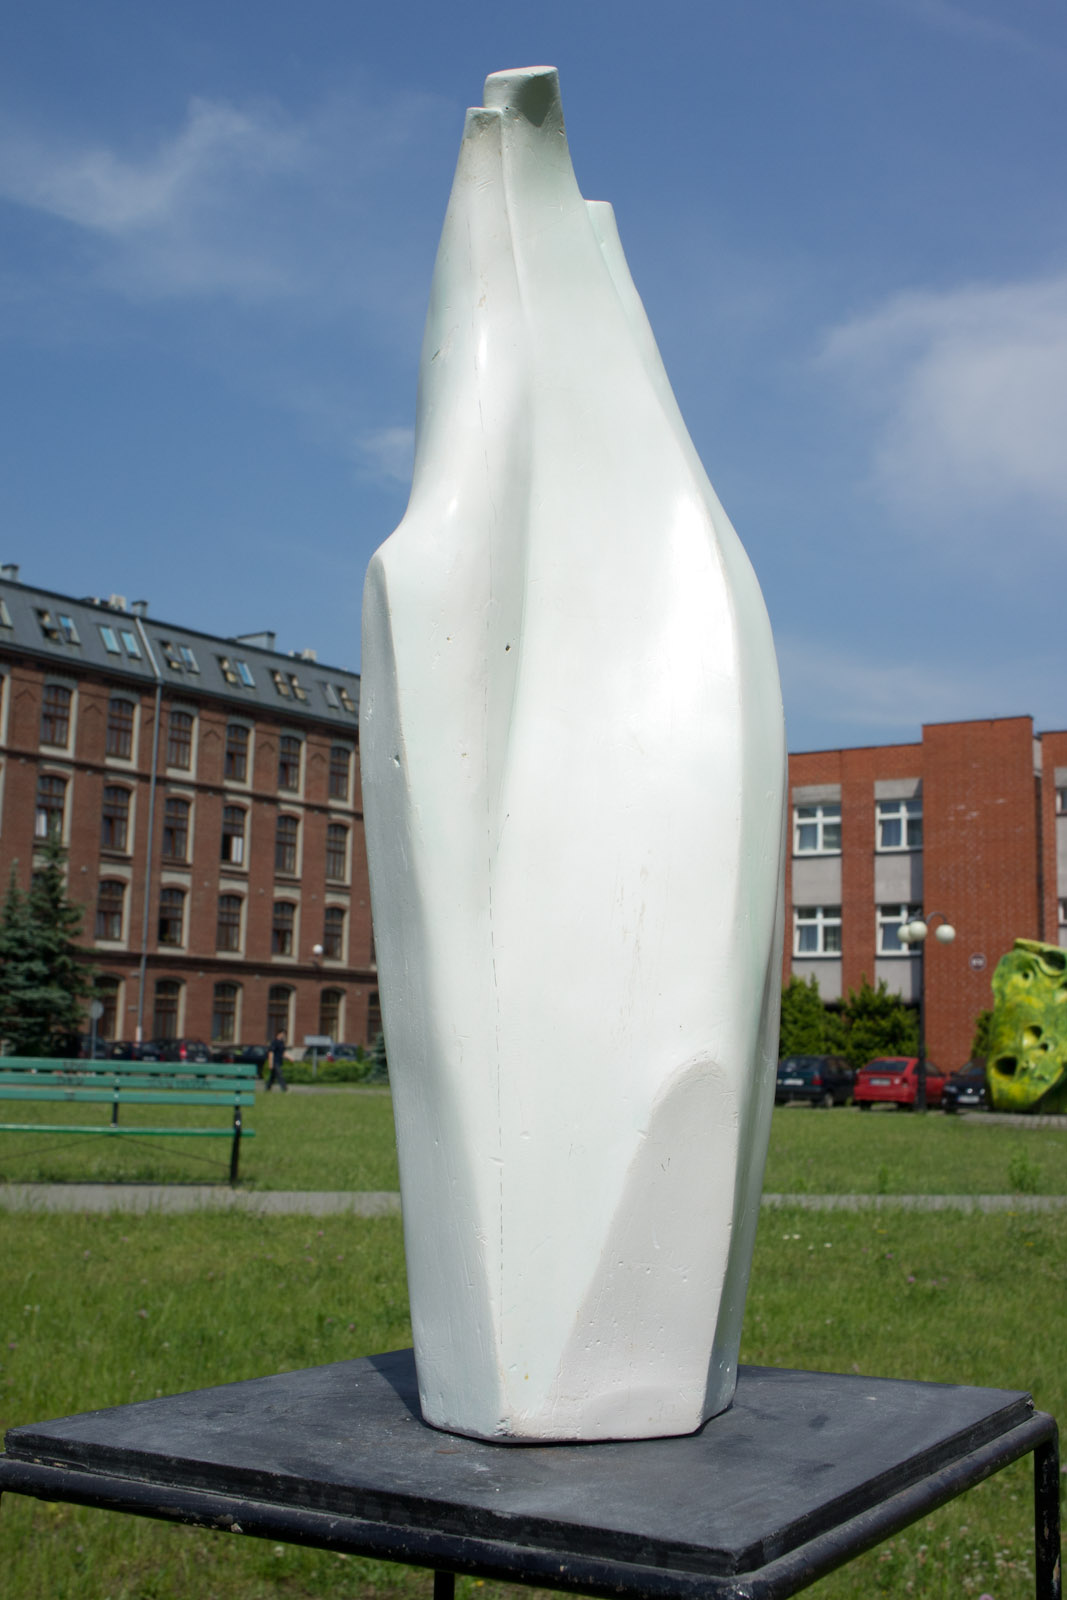 The sculpture of Bronek